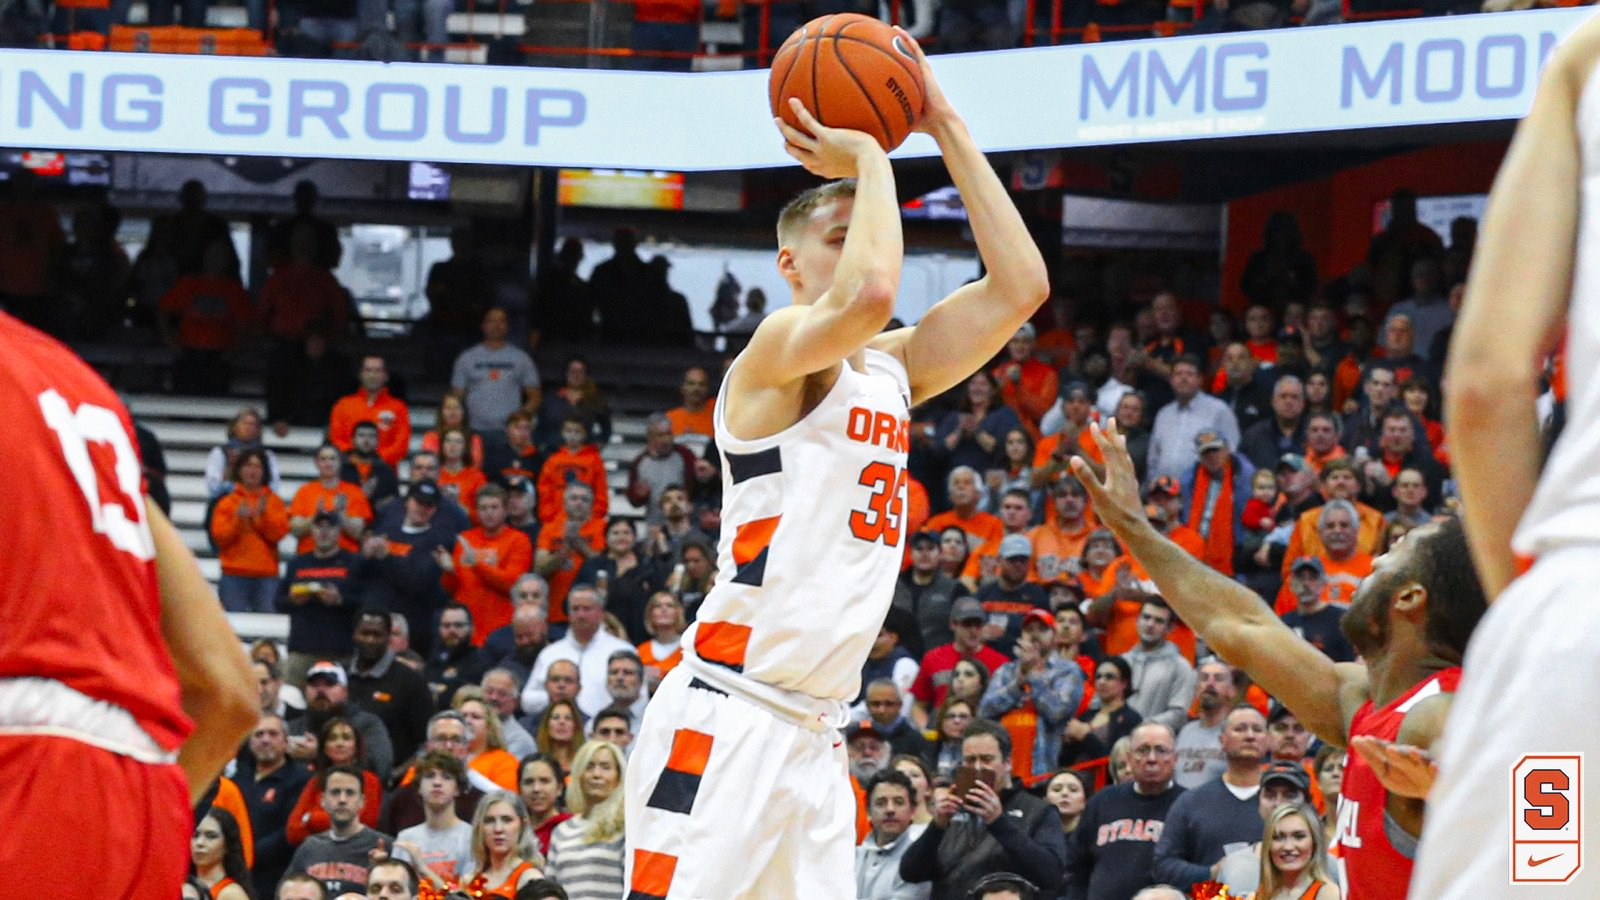 ORANGE GAME DAY: Syracuse welcomes Cornell to Carrier Dome tonight (preview & info)